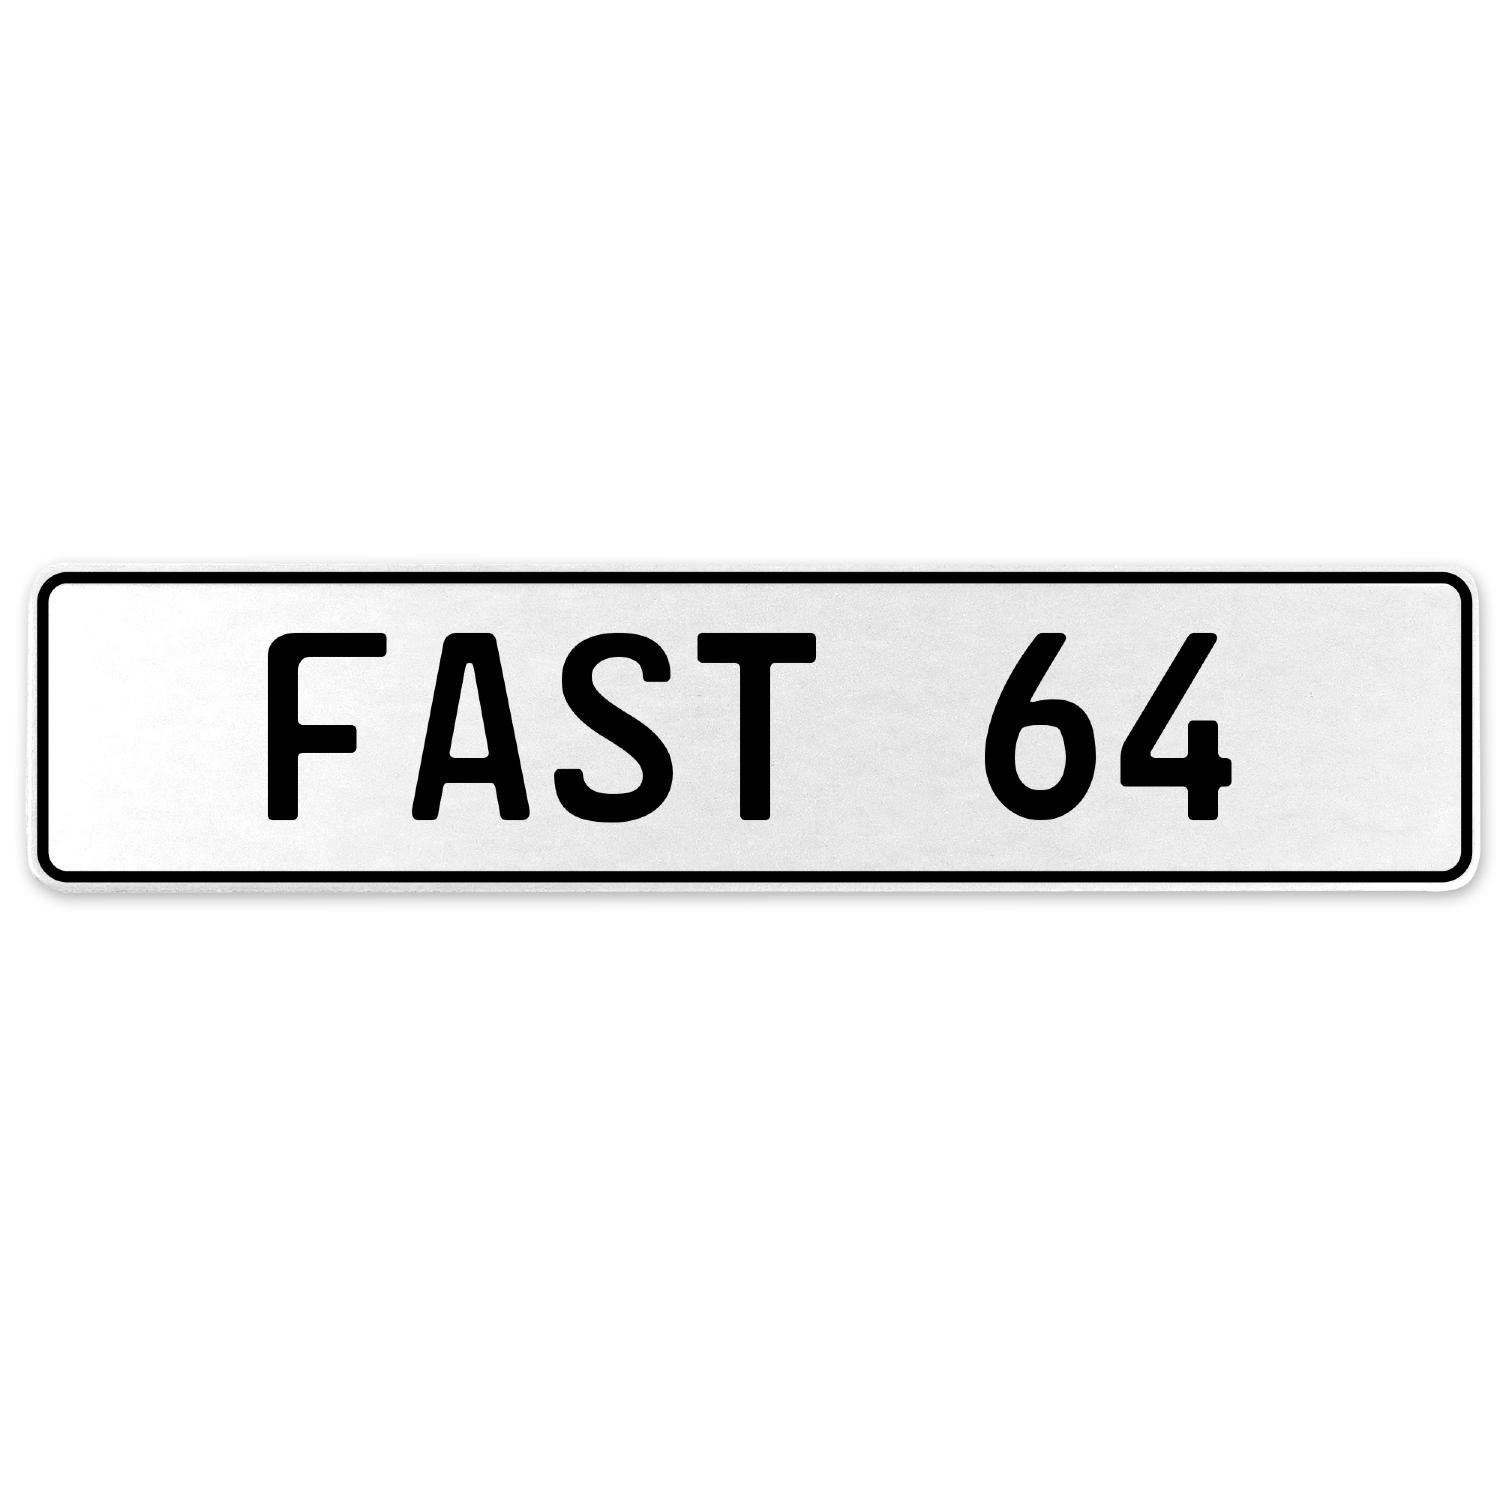 Vintage Parts 557334 Fast 64 White Stamped Aluminum European License Plate